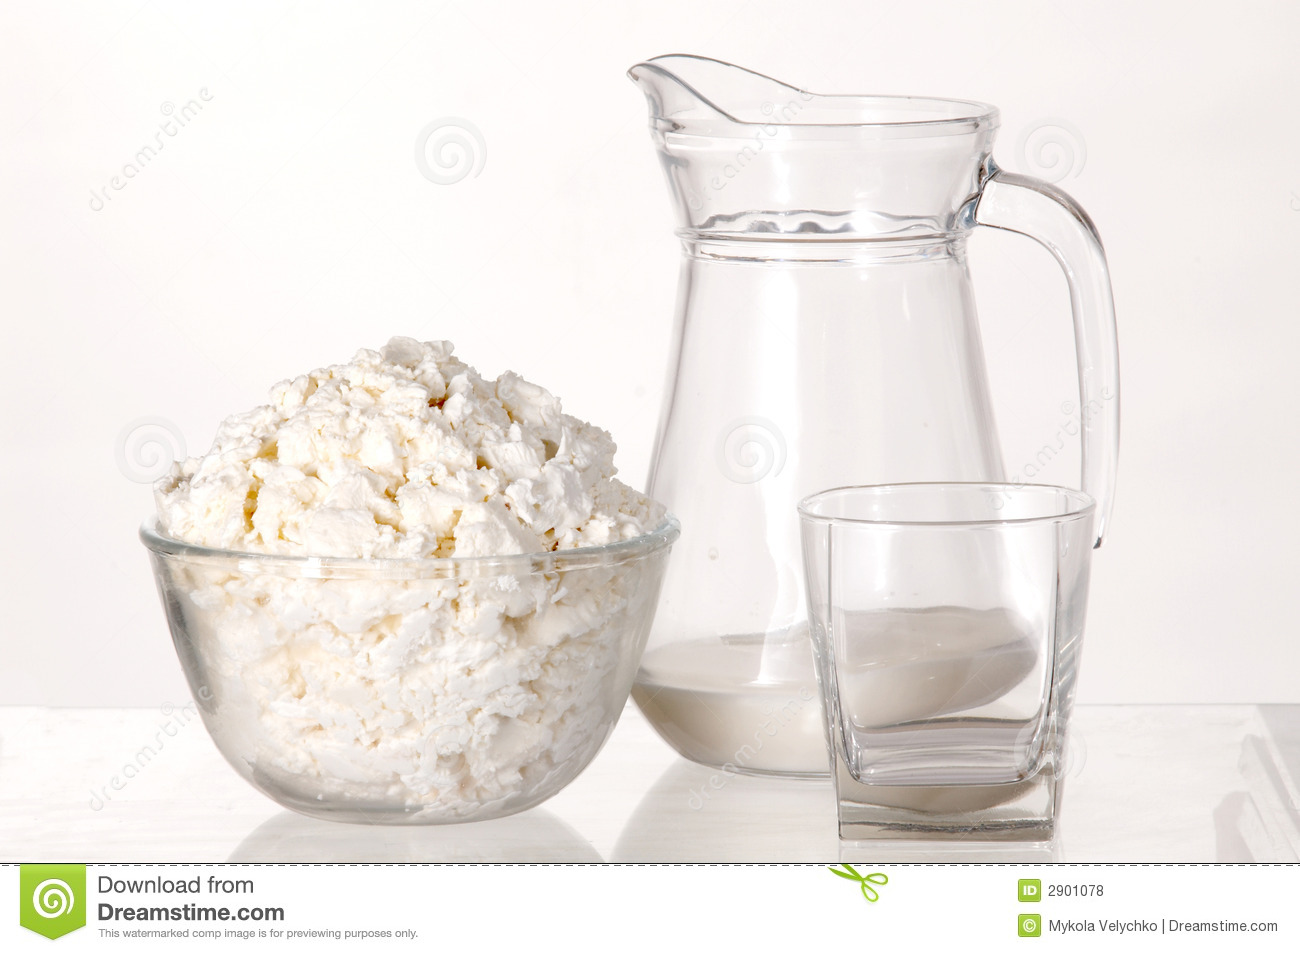 White still-life with milk and cottage cheese on white background.: dreamstime.com/royalty-free-stock-photos-white-still-life-image2901078